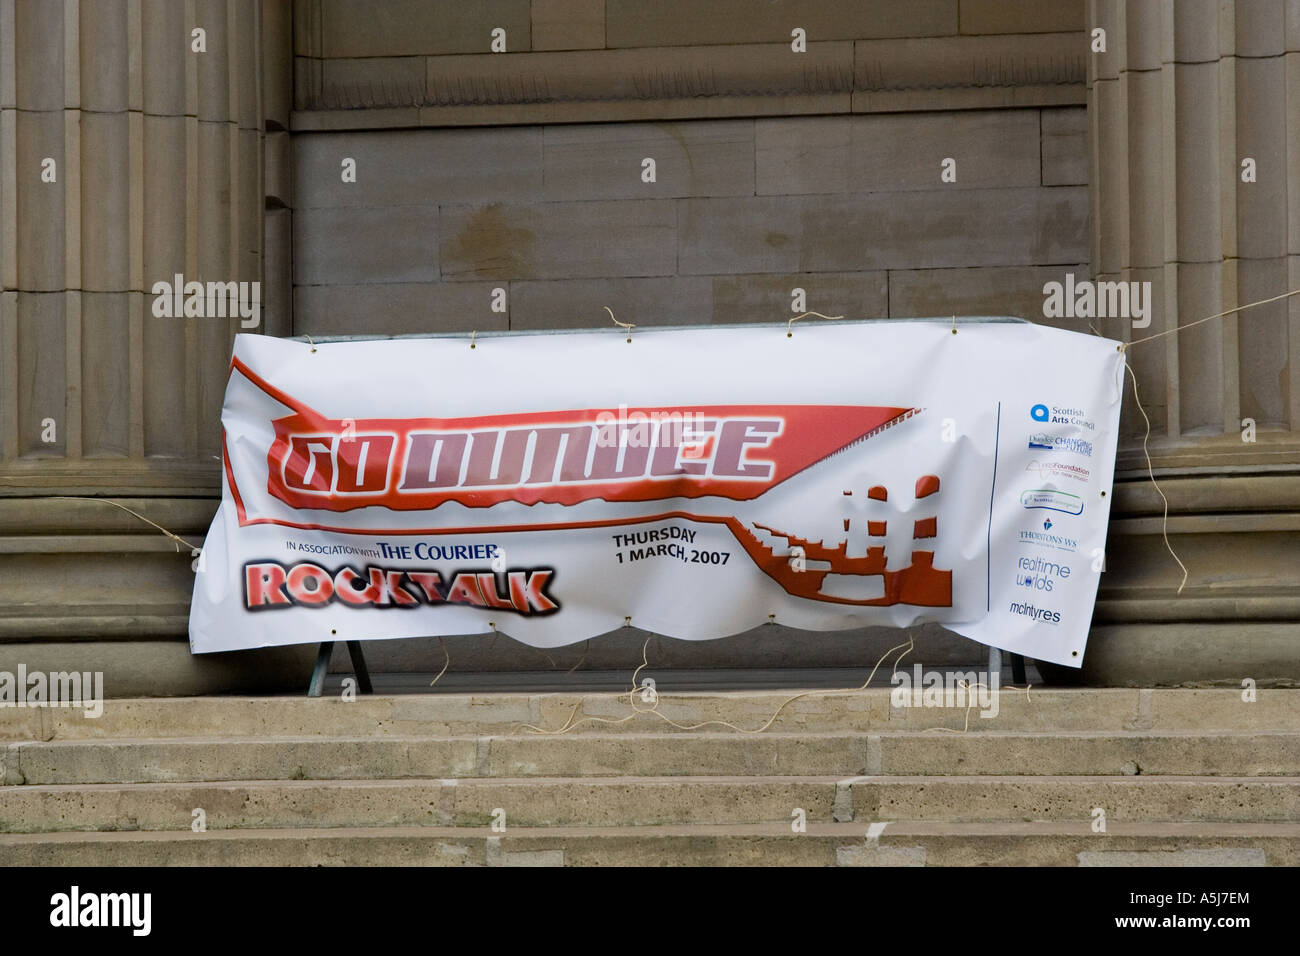 A Banner between two columns advertising a Rock Talk festival in front of the Caird Hall in the City of Dundee, - Stock Image